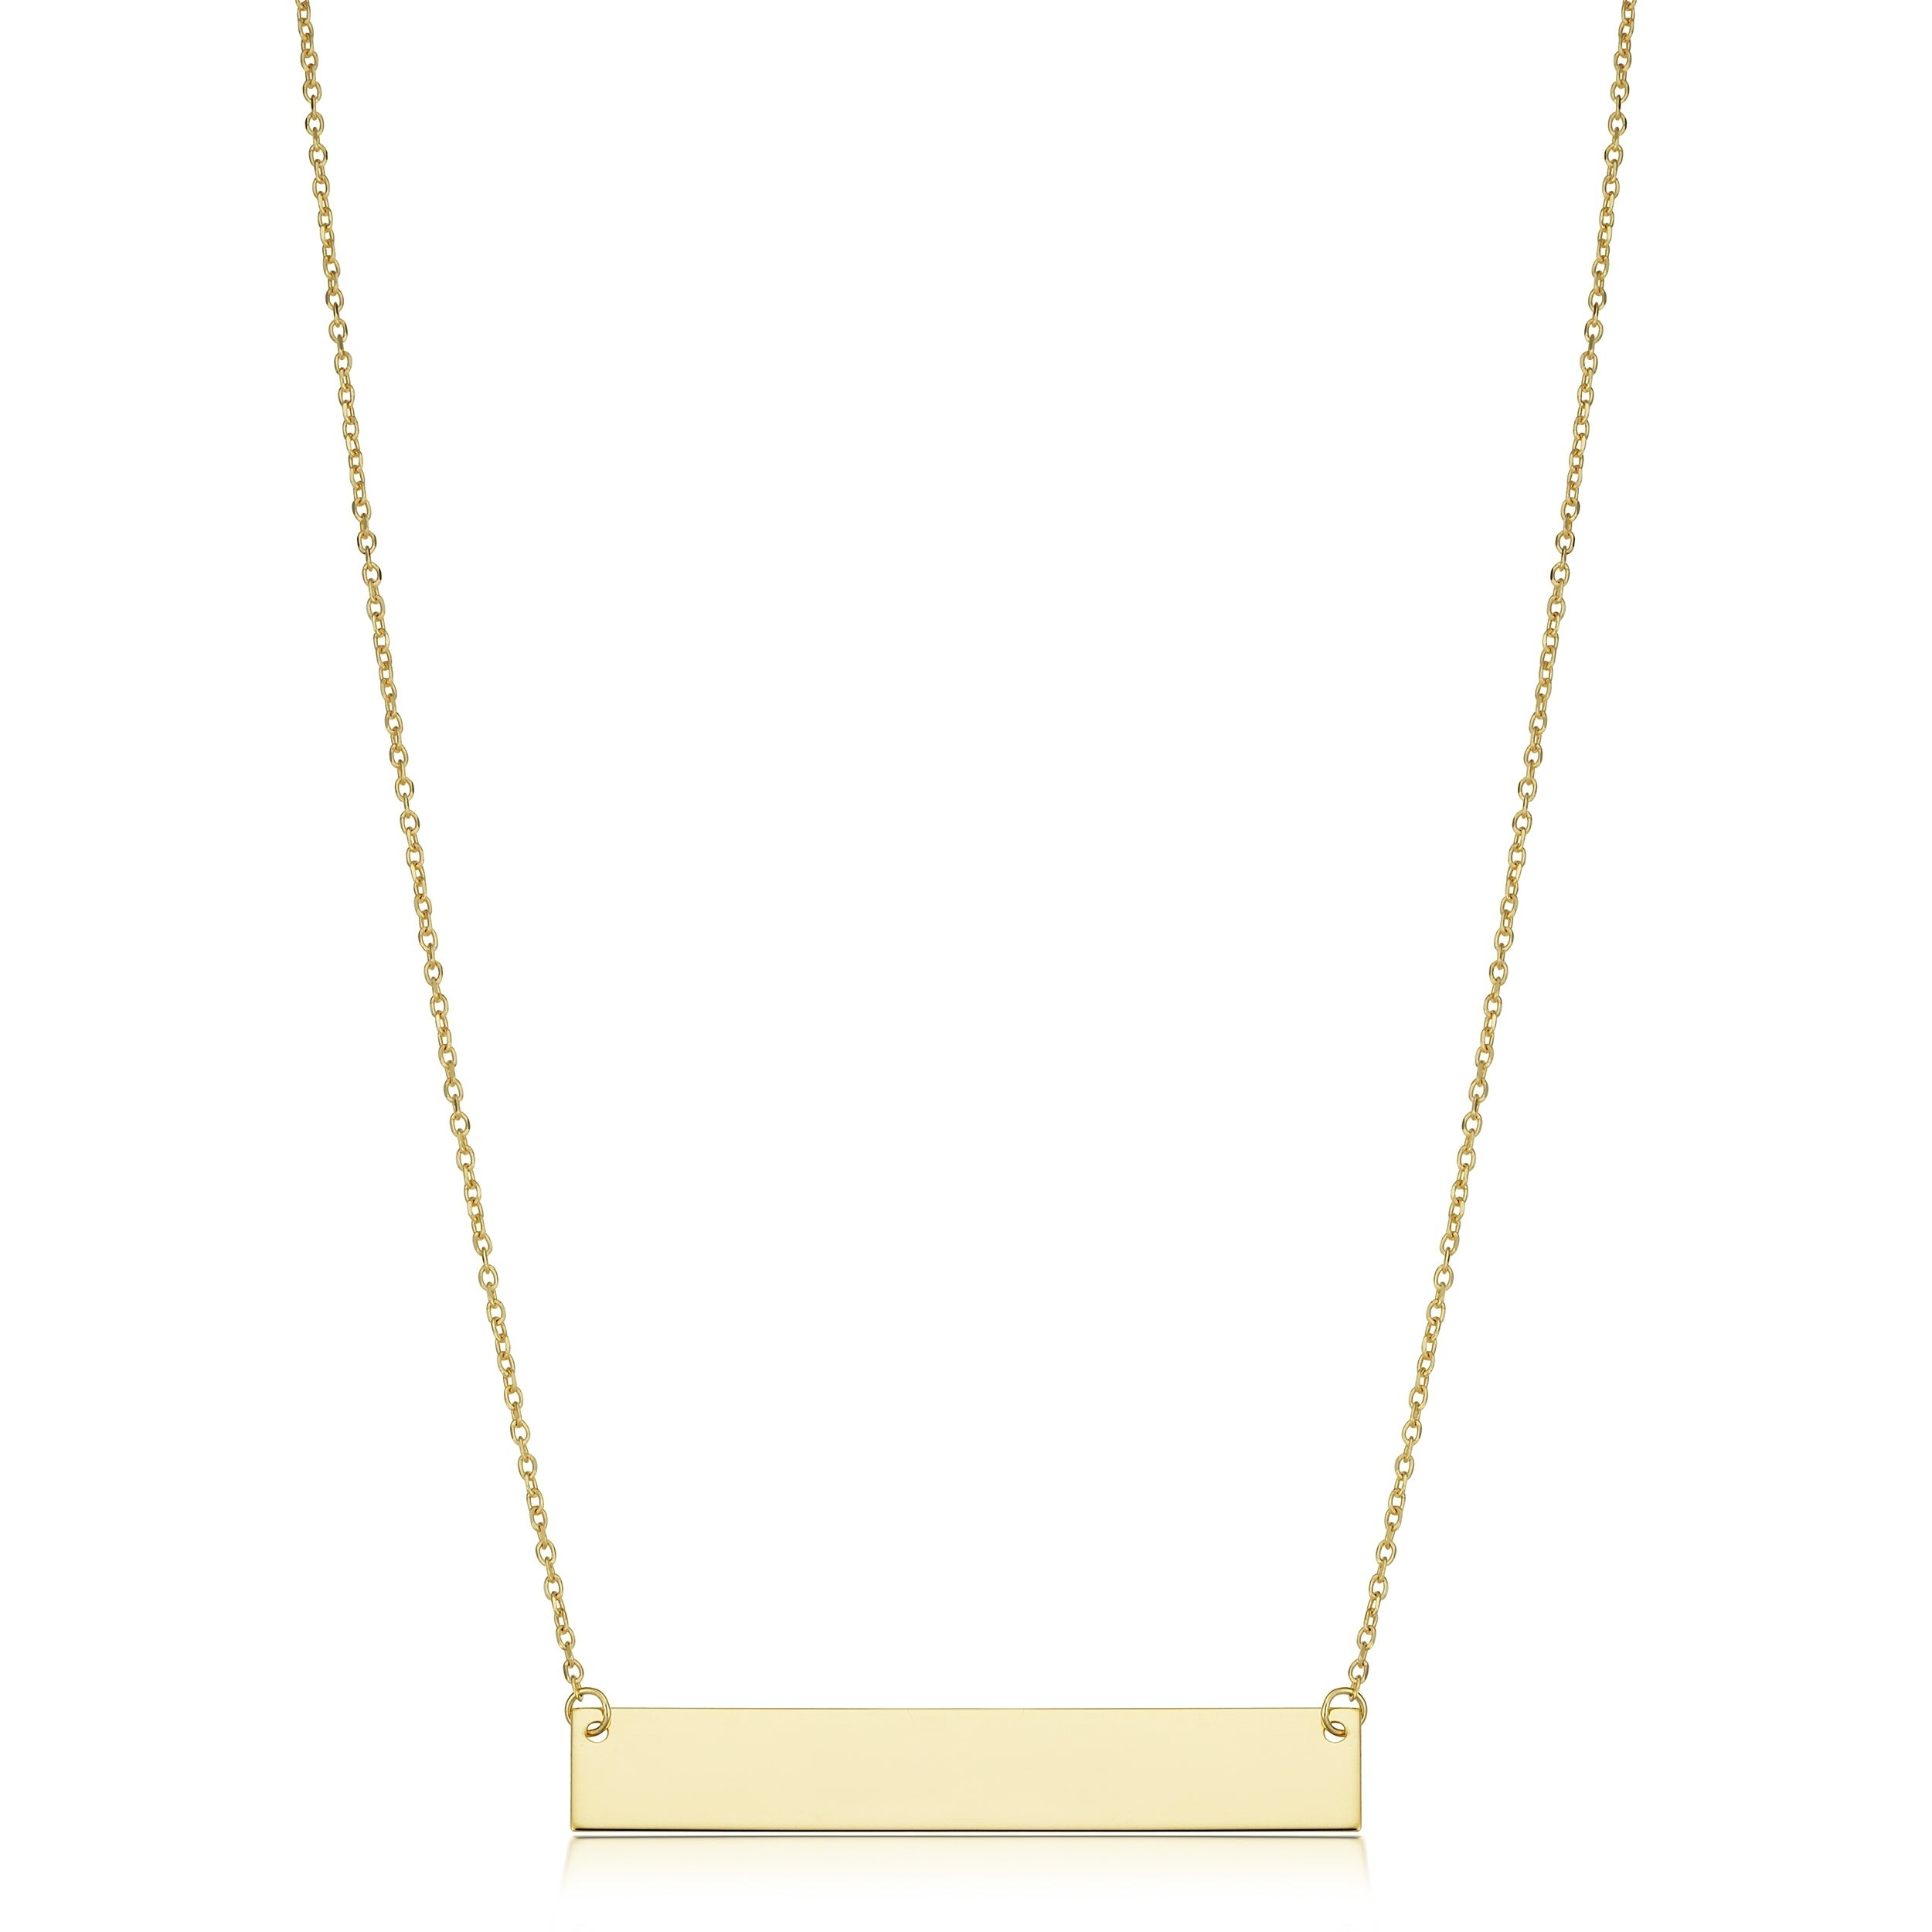 10K Or 14K Gold Engraveable Bar Cable Chain Necklace (18 Inch) Throughout Most Current Classic Cable Chain Necklaces (View 1 of 25)